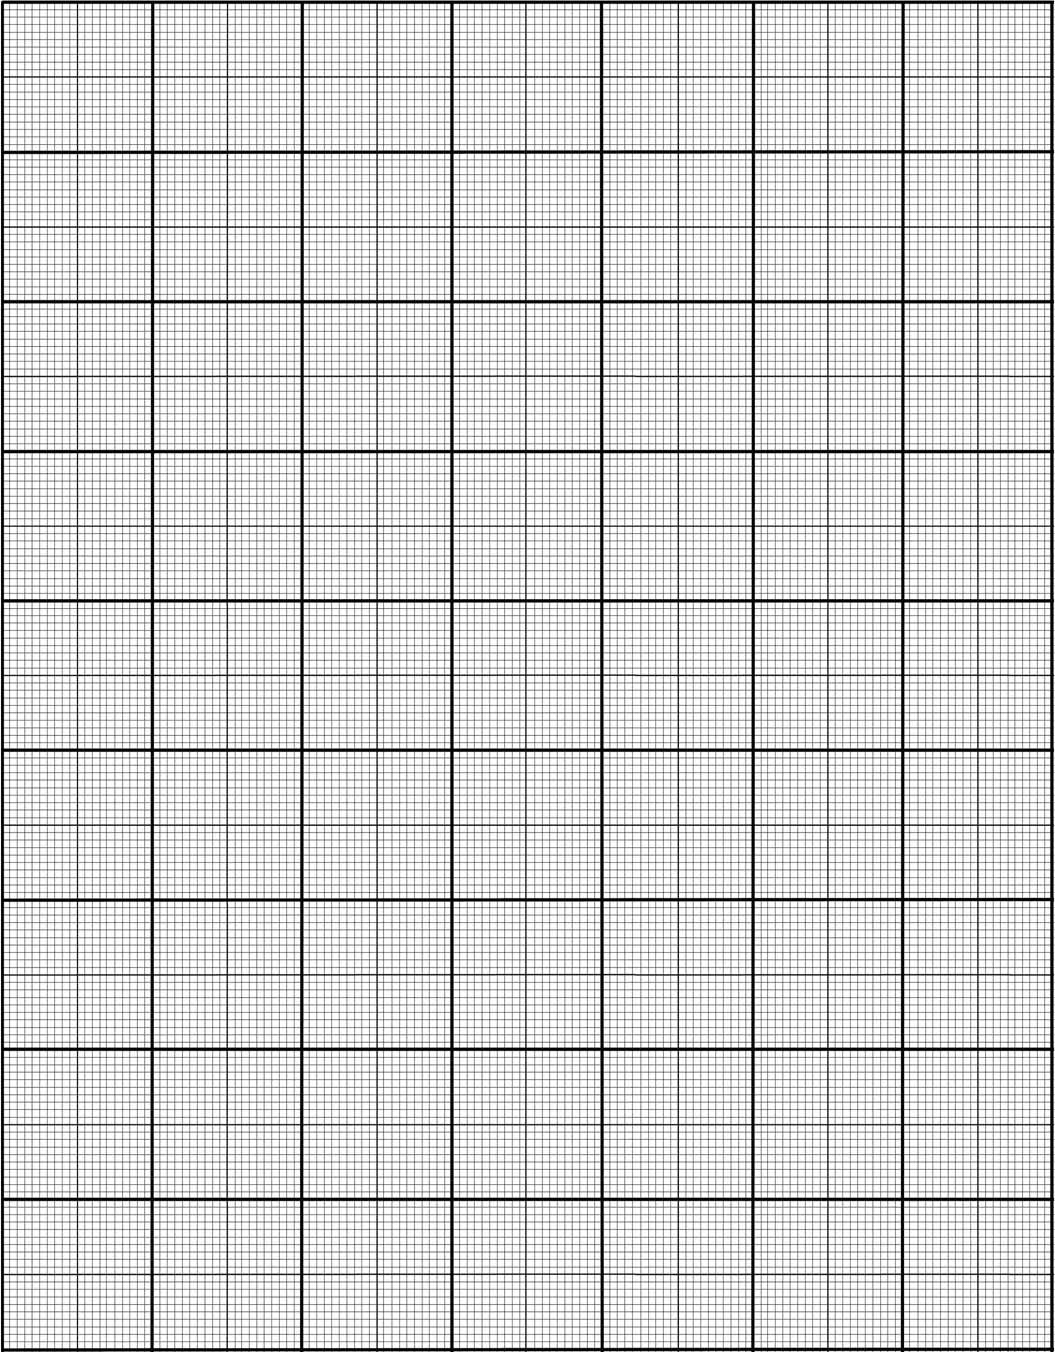 graph paper template 541 Projects to Try Pinterest – Graph Paper Template